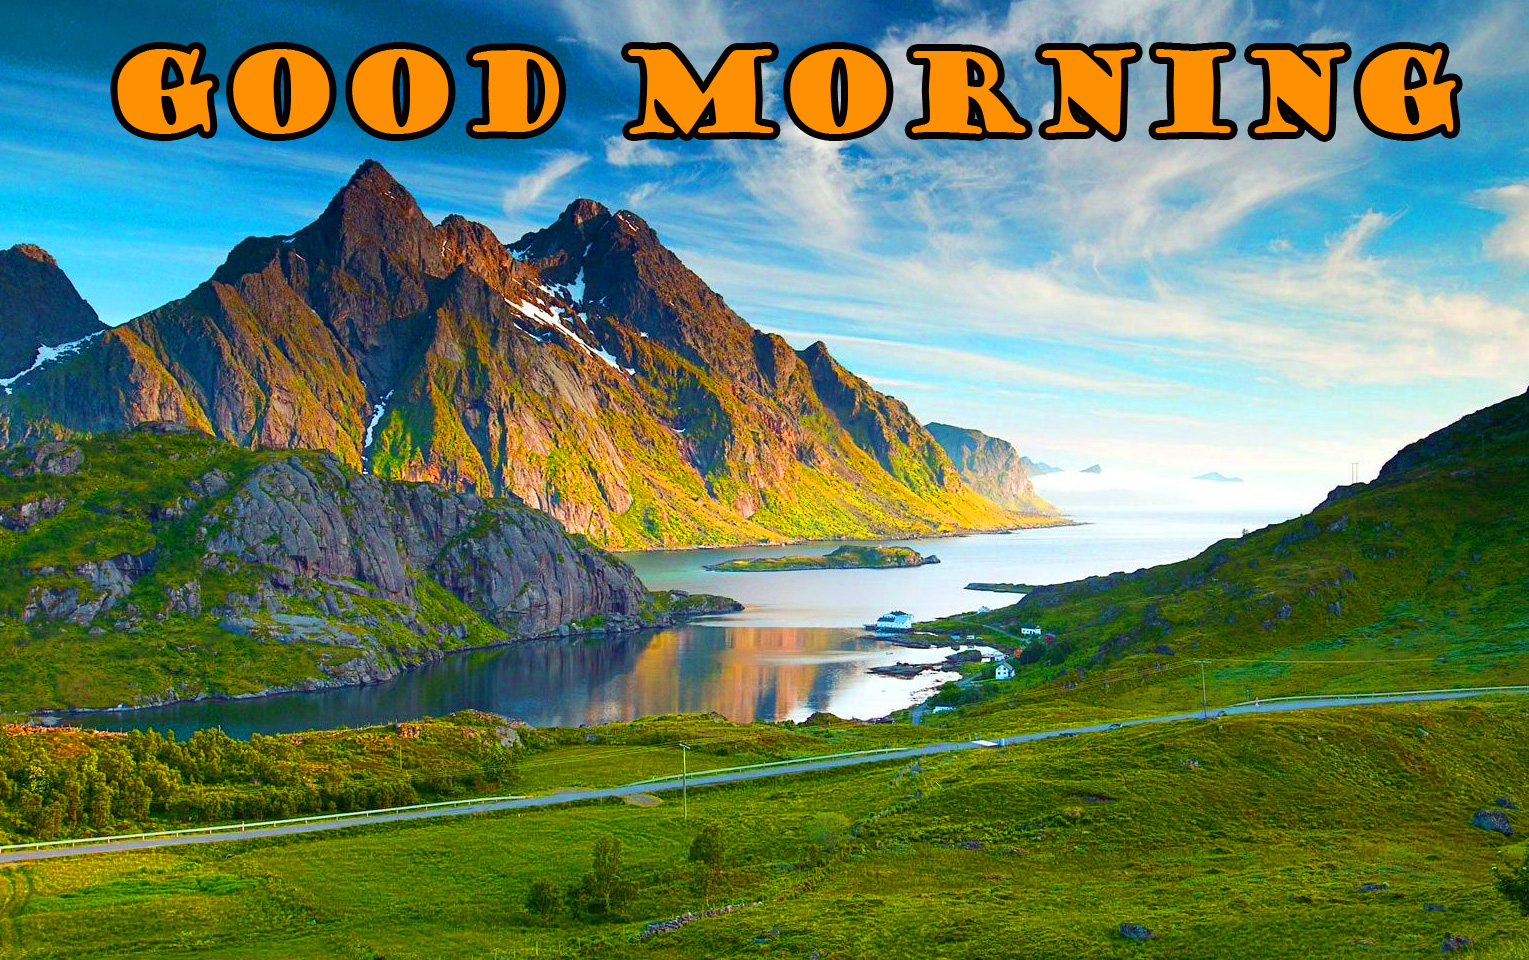 Good Morning Nature Wallpaper Pictures Images HD Download